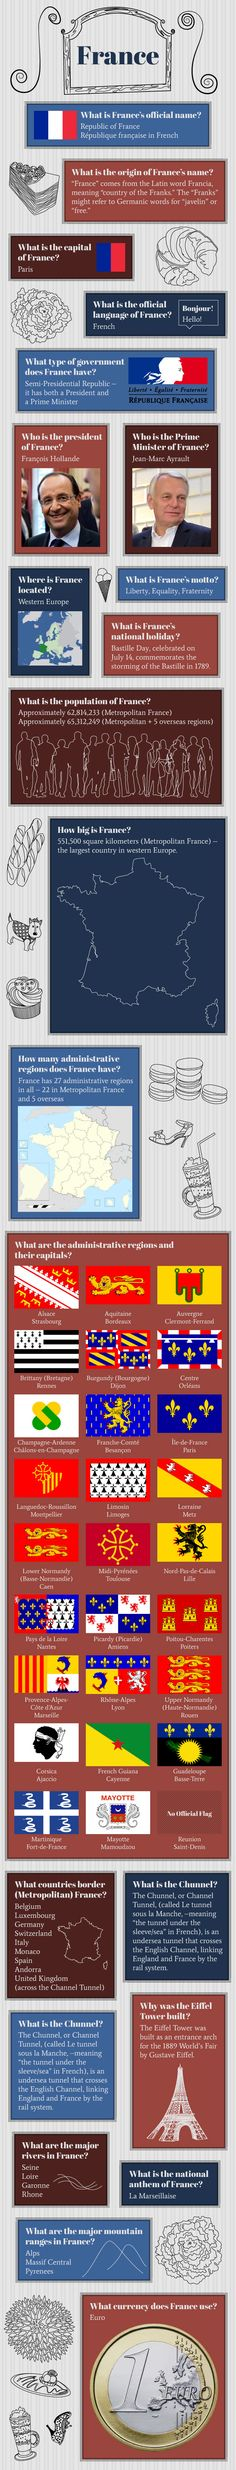 France Facts Infographic